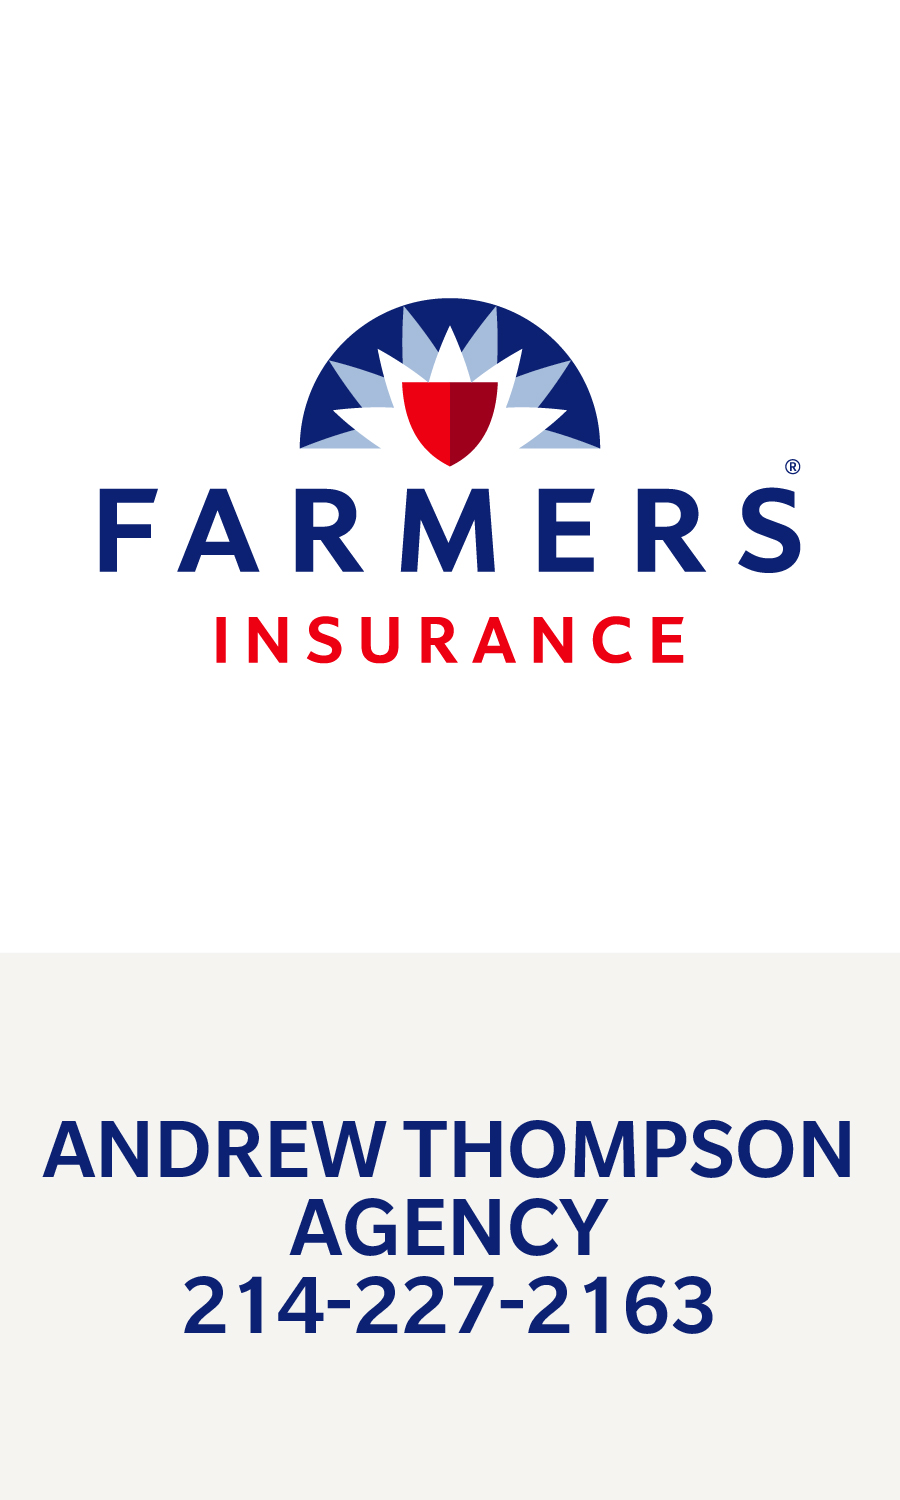 Andrew Thompson Agency - Farmers Insurance